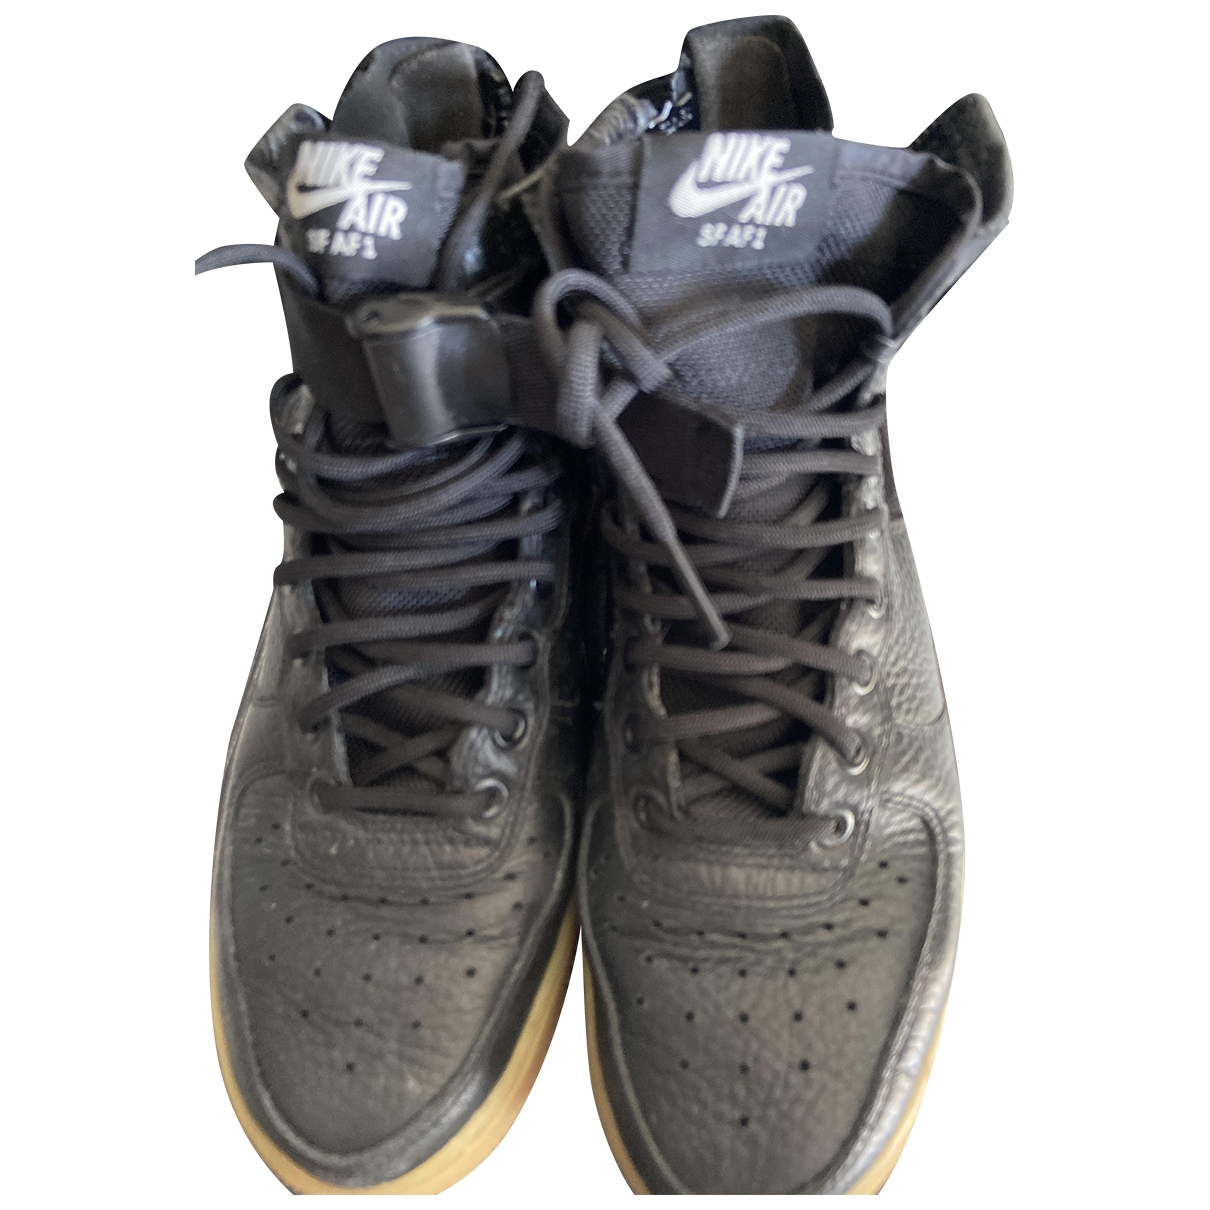 Nike Air Force 1 Black Leather Trainers for Women 37.5 EU